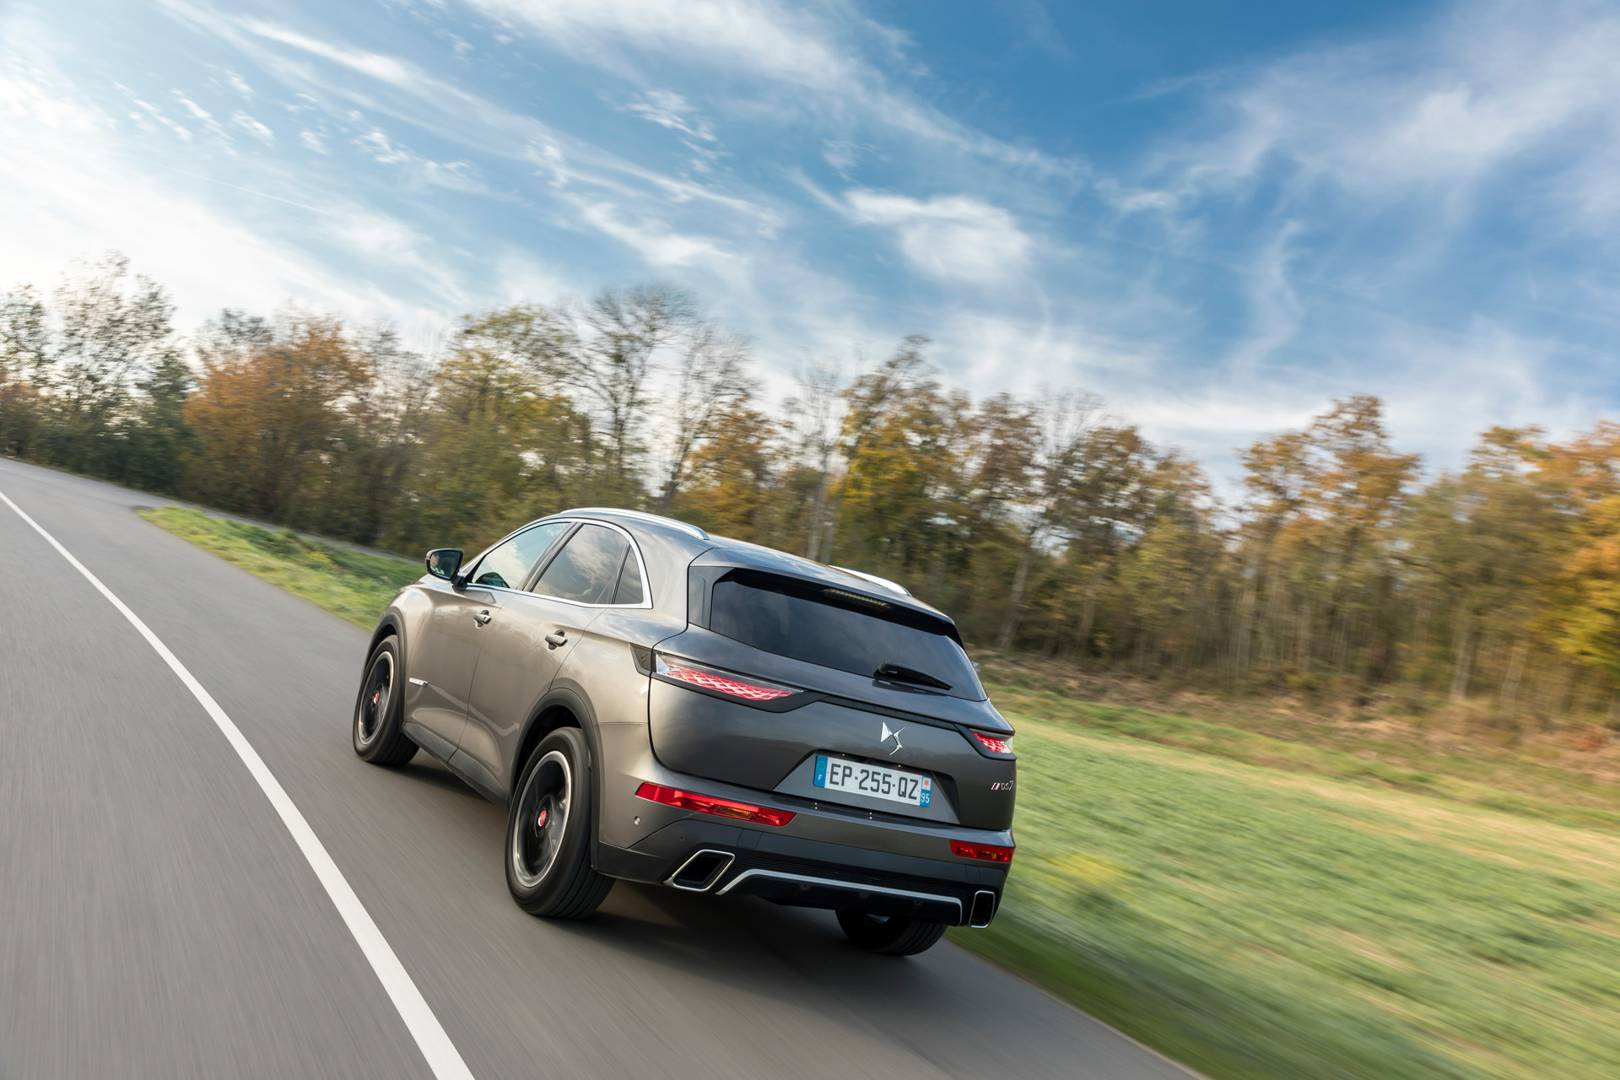 Citroën DS 7 Crossback: a first drive review | British GQ